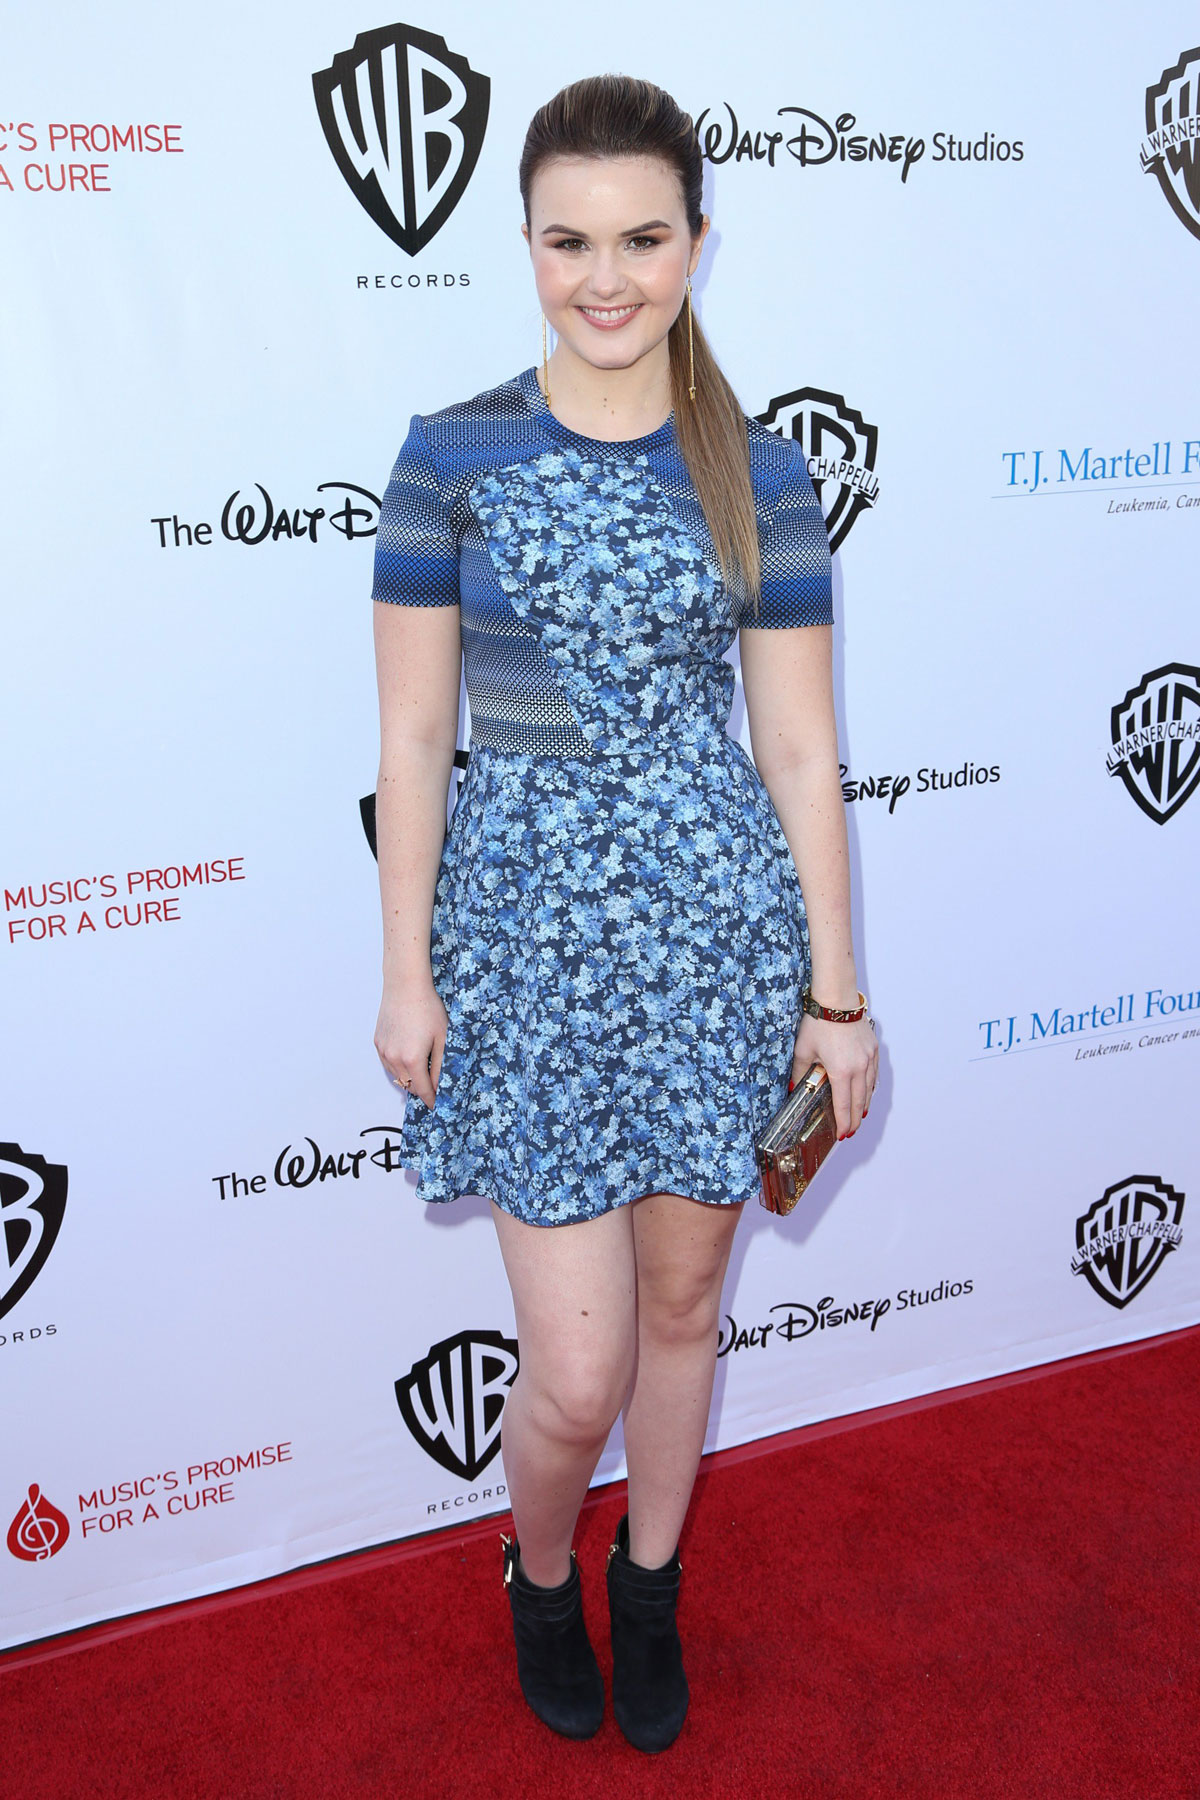 ASHLEE KEATING at T.J. Martell Foundation Family Day in Studio City